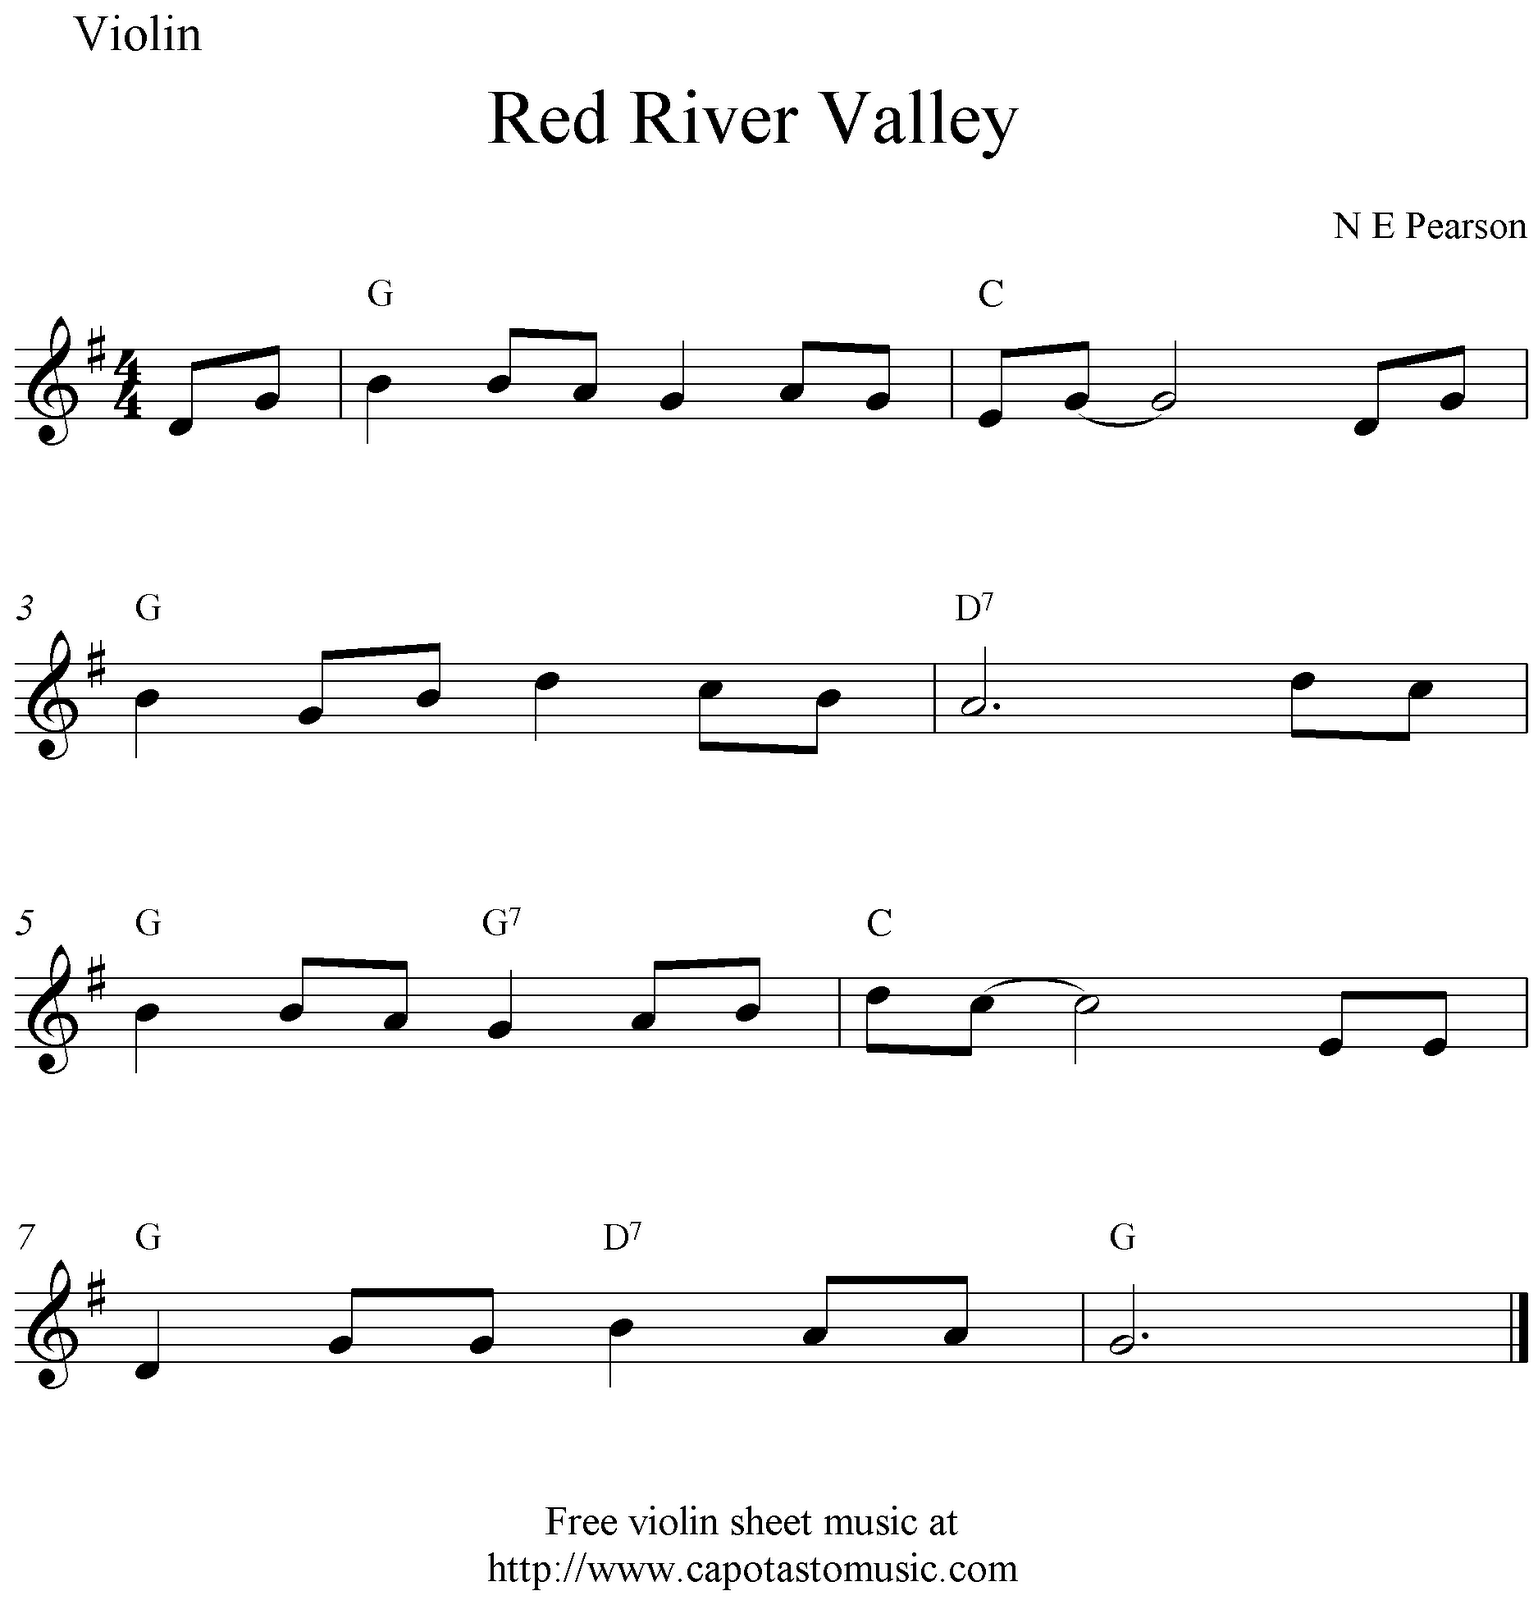 Gerudo Valley Flute Sheet Music submited images.